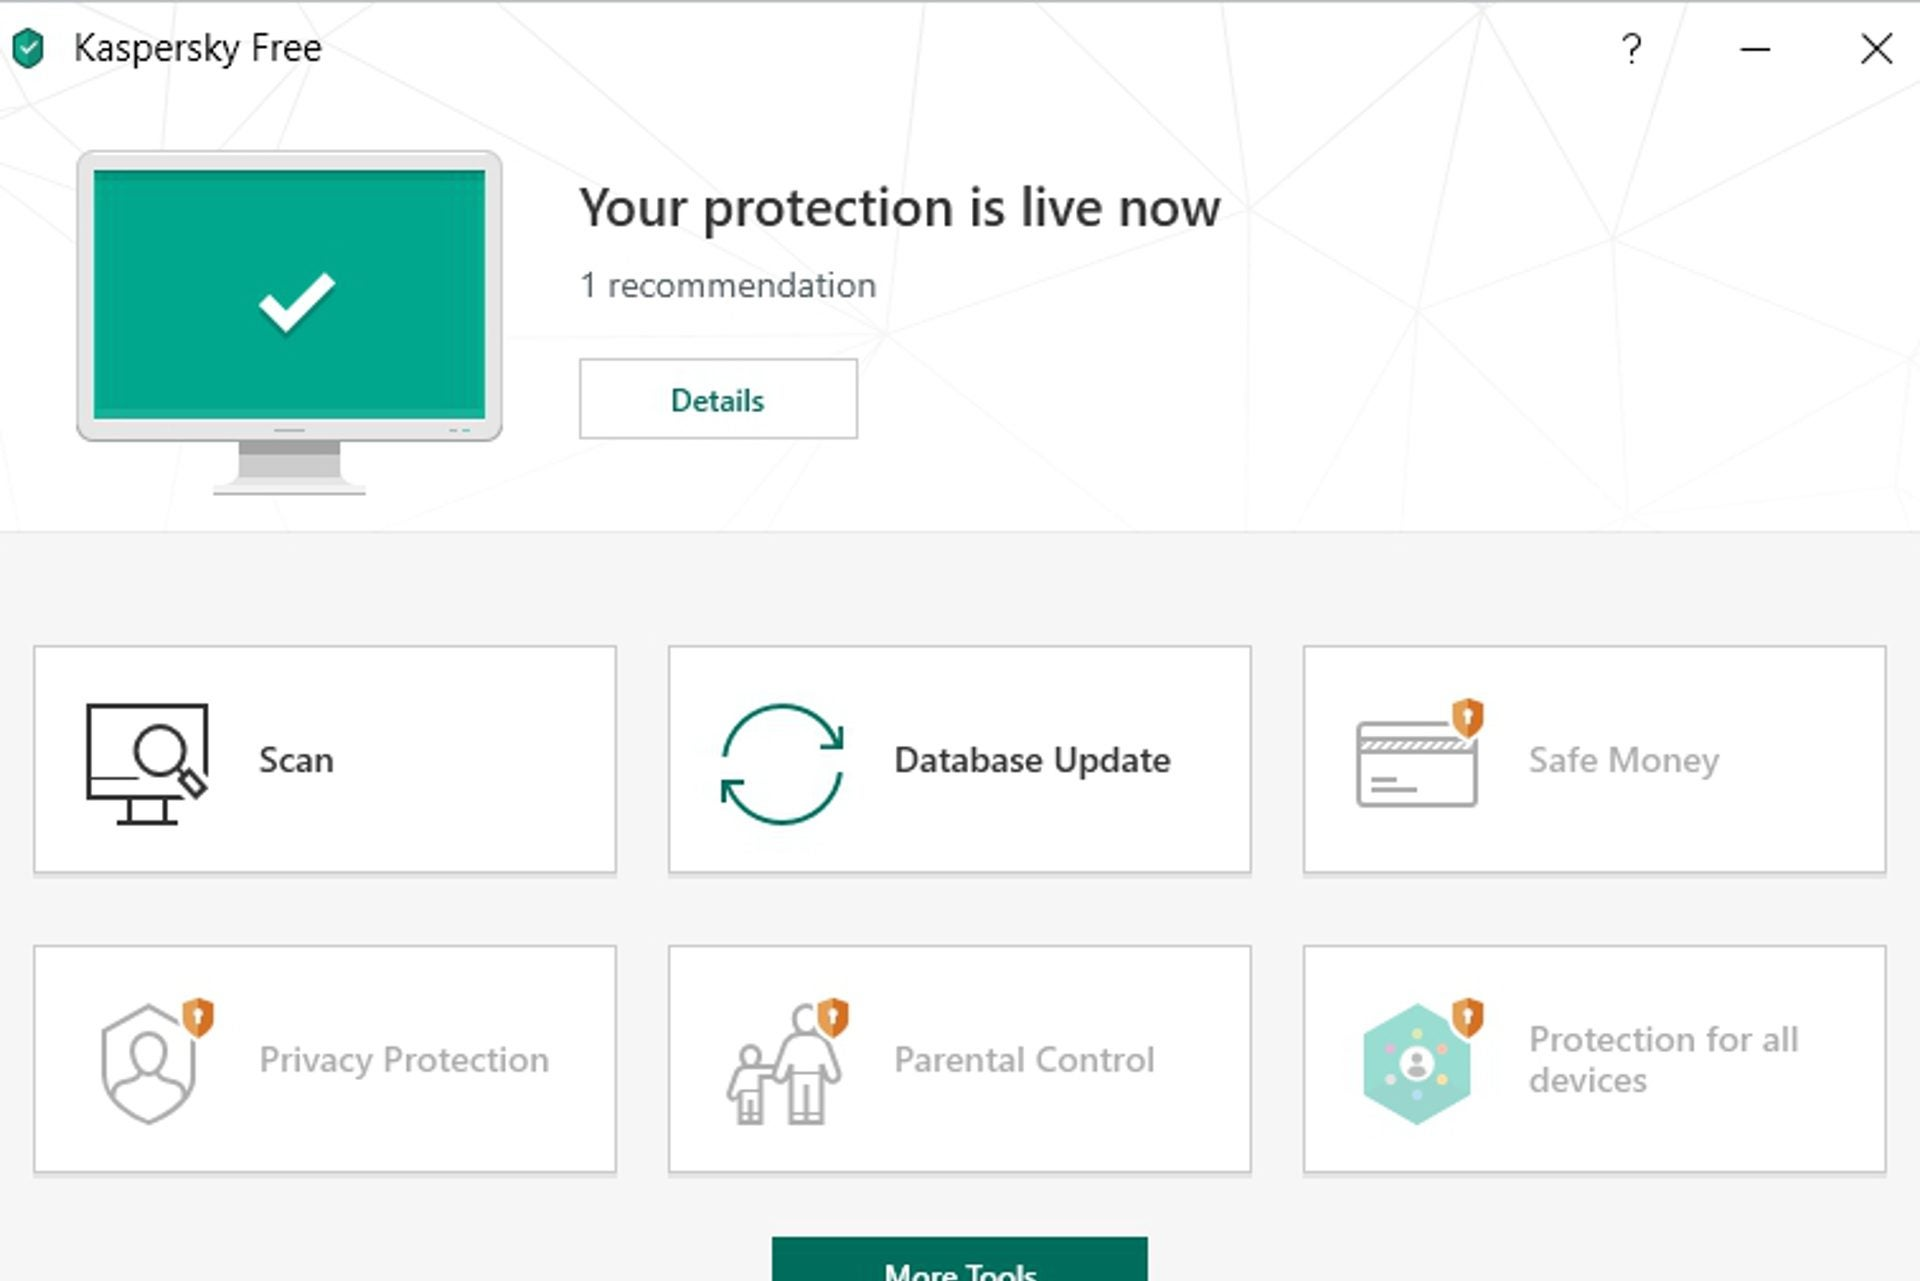 avast incompatible software detected kaspersky